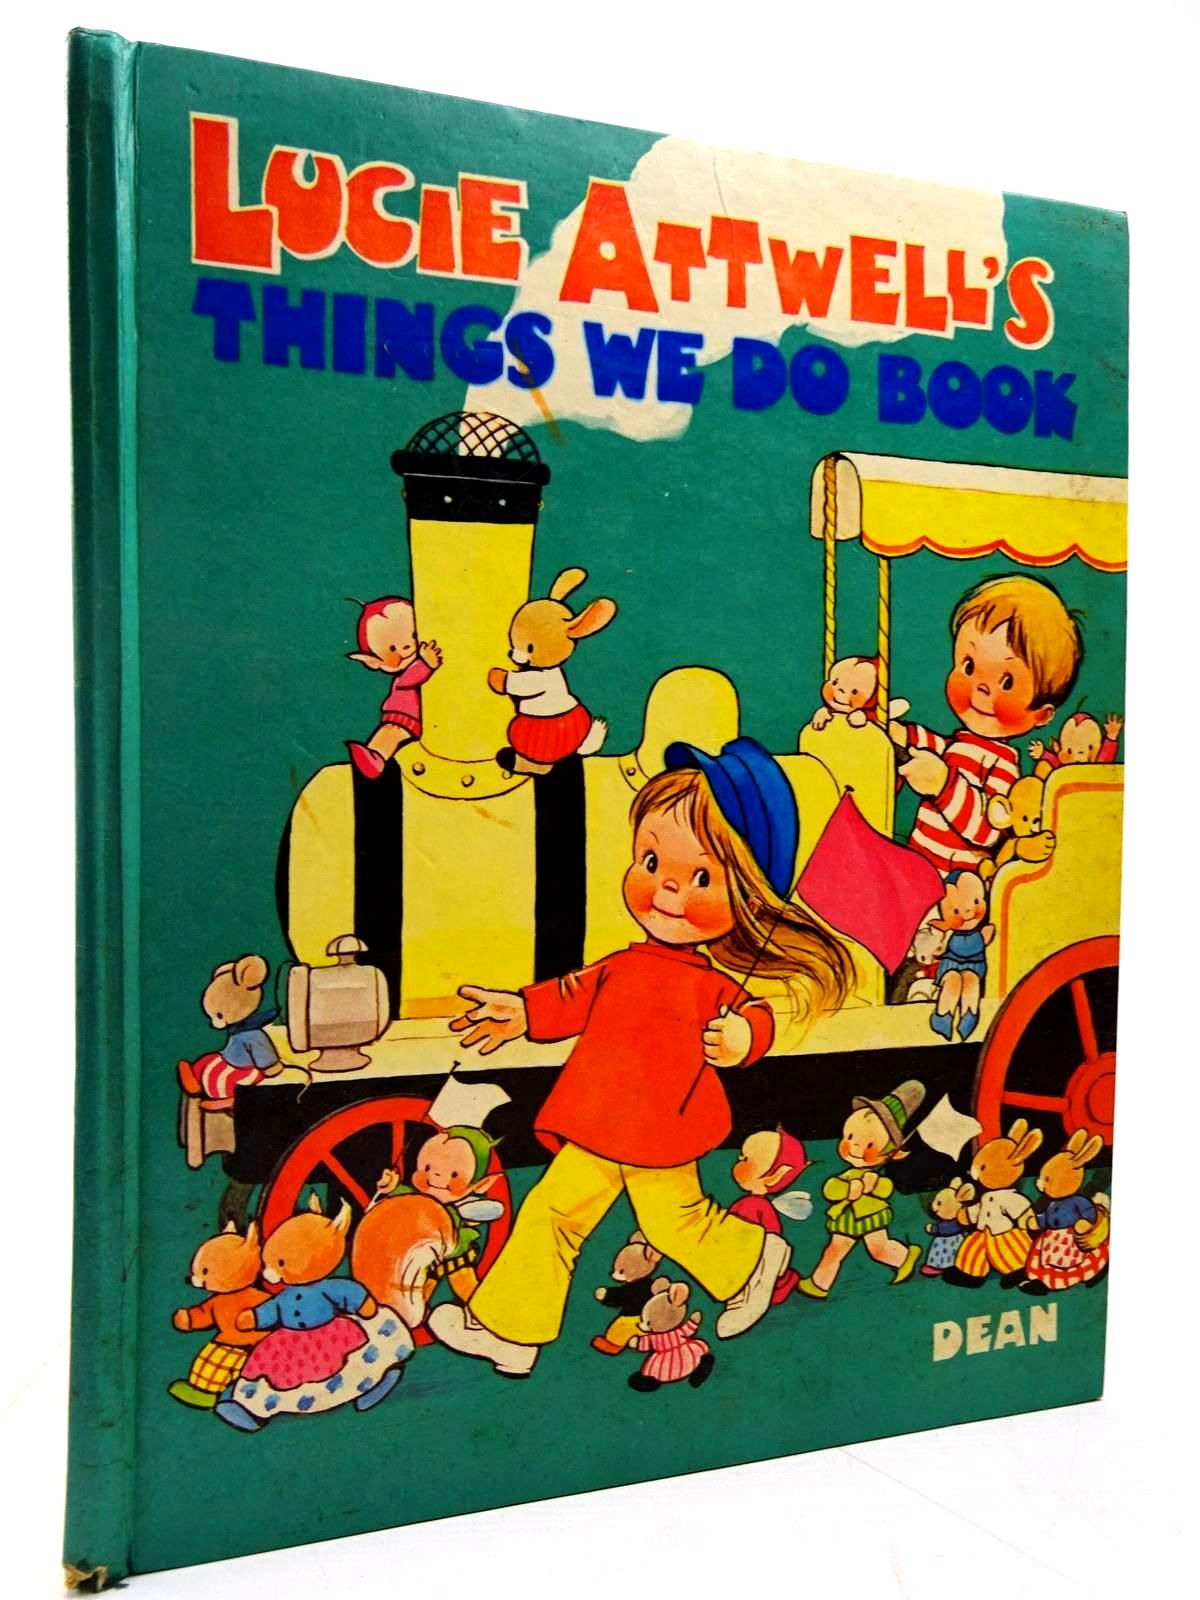 Photo of LUCIE ATTWELL'S THINGS WE DO BOOK written by Attwell, Mabel Lucie illustrated by Attwell, Mabel Lucie published by Dean & Son Ltd. (STOCK CODE: 2131037)  for sale by Stella & Rose's Books